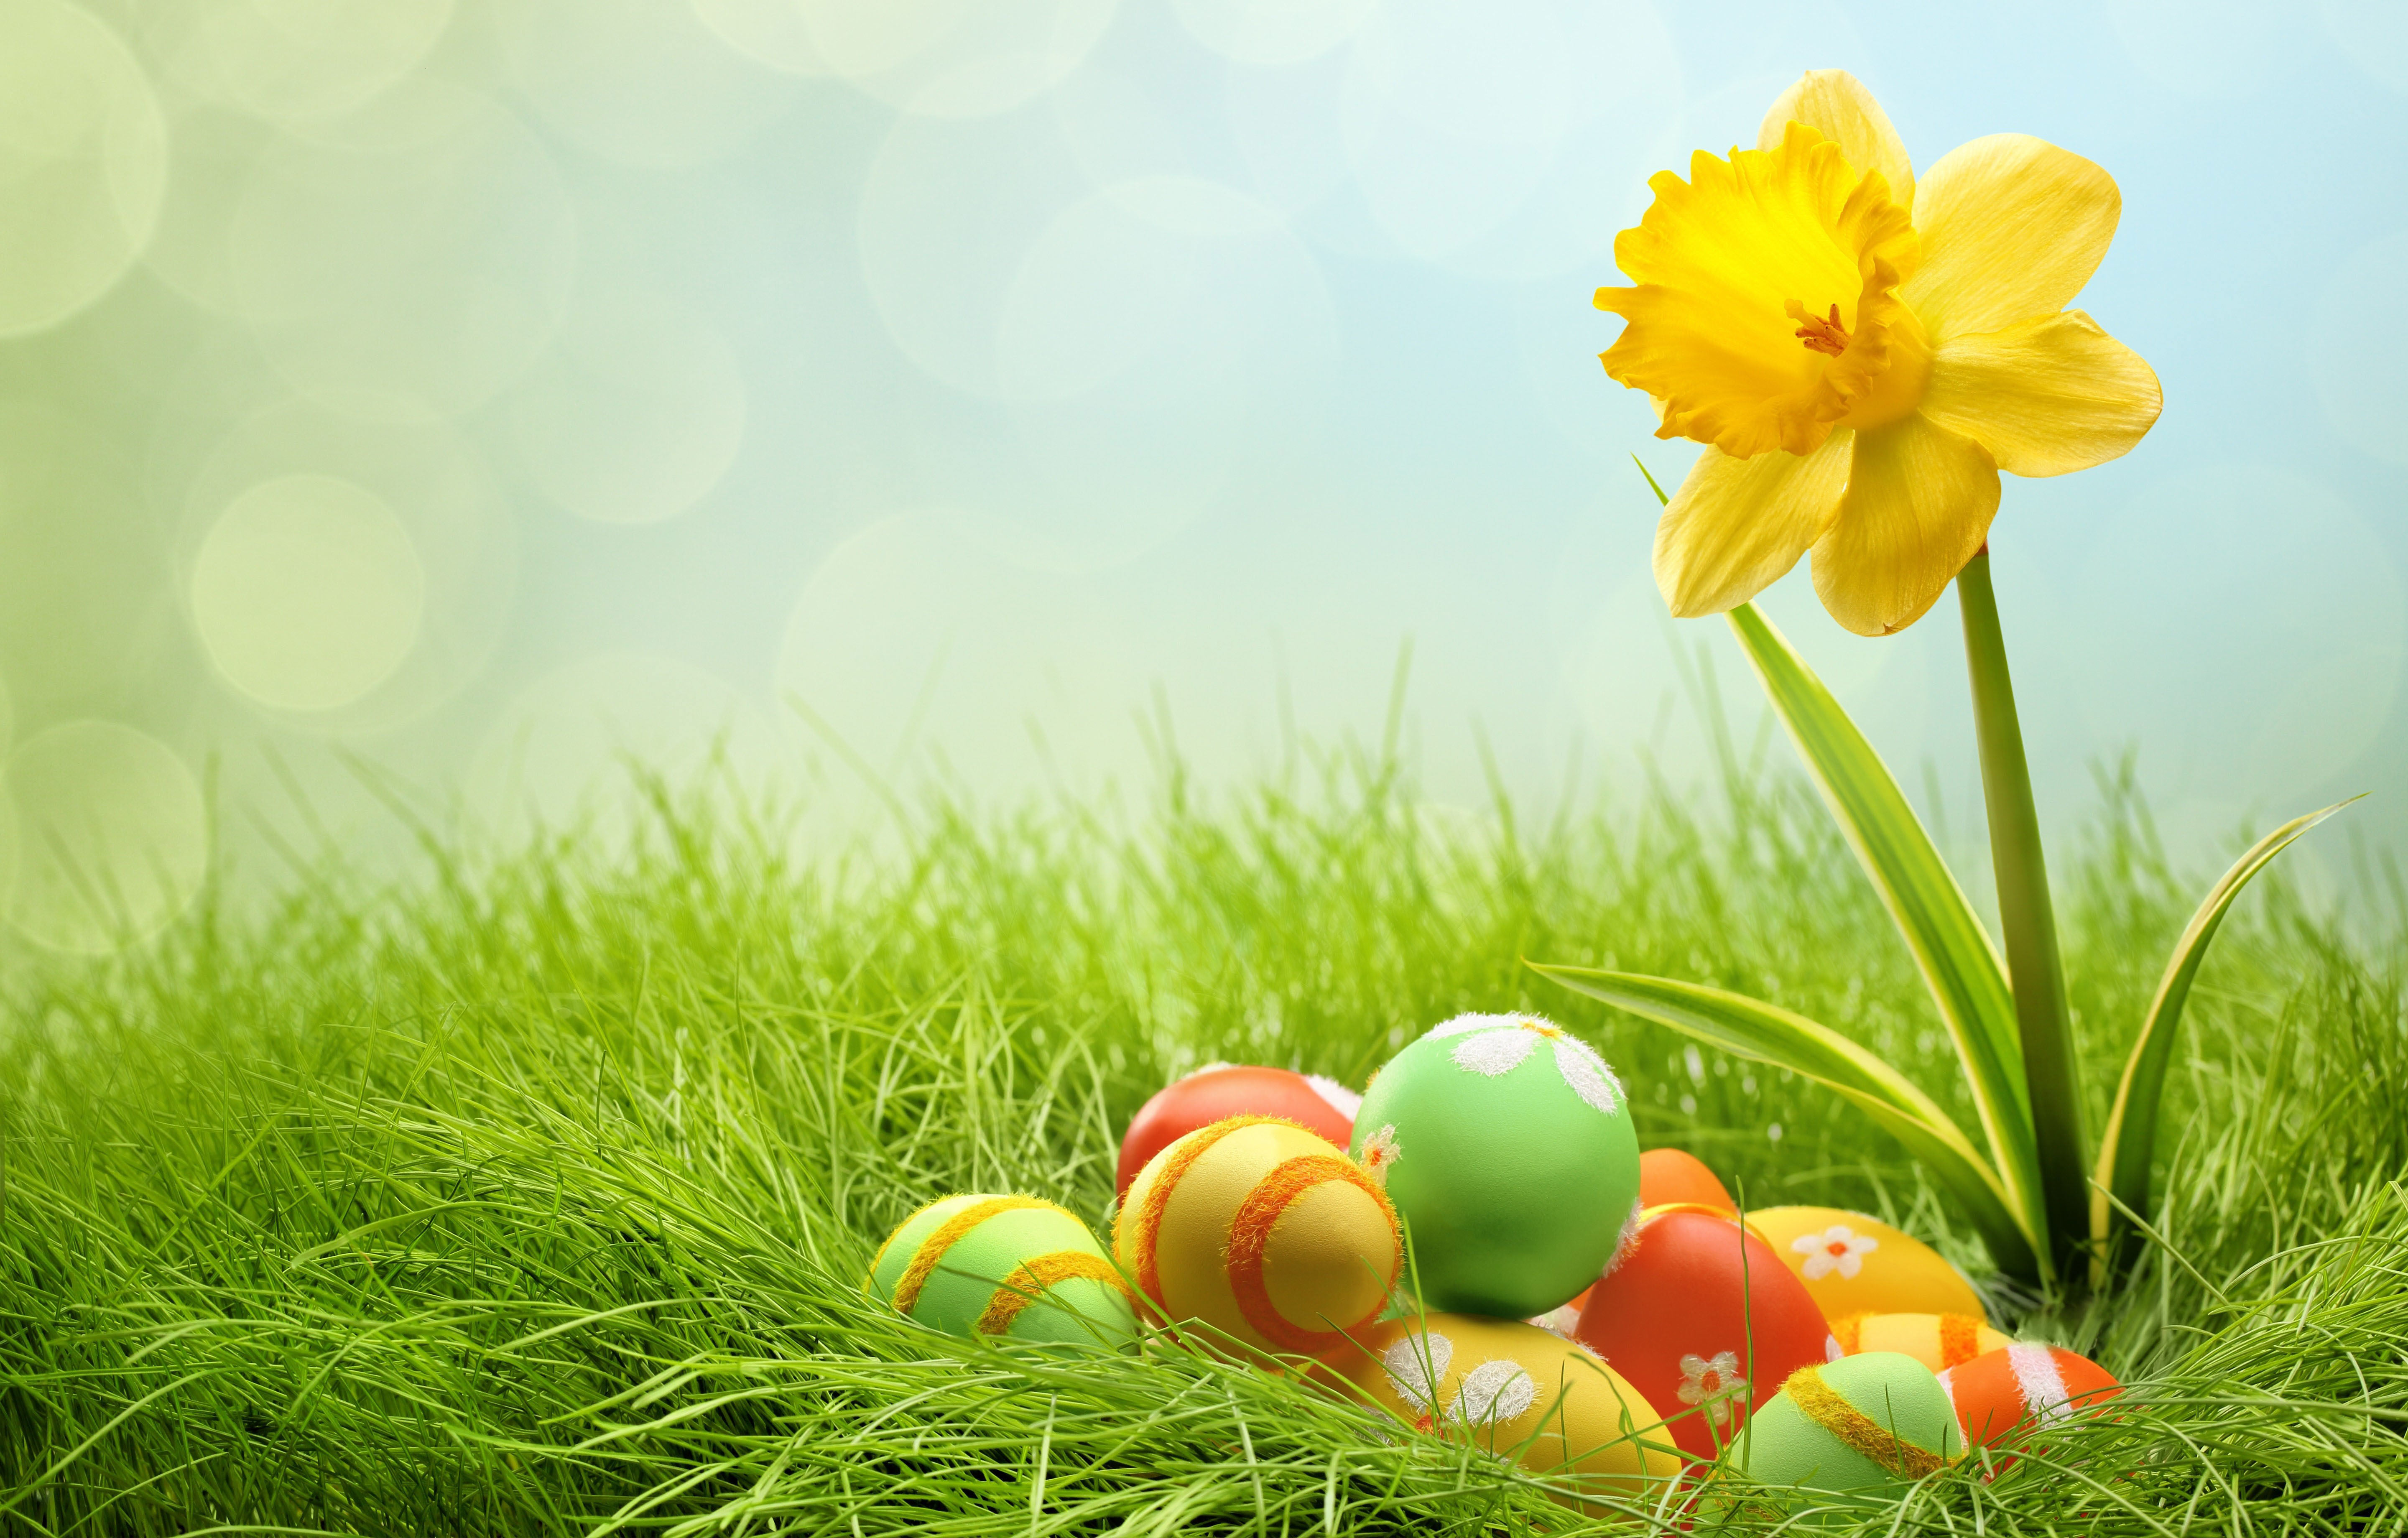 Easter,Background,Designs,Eggs,Flowers